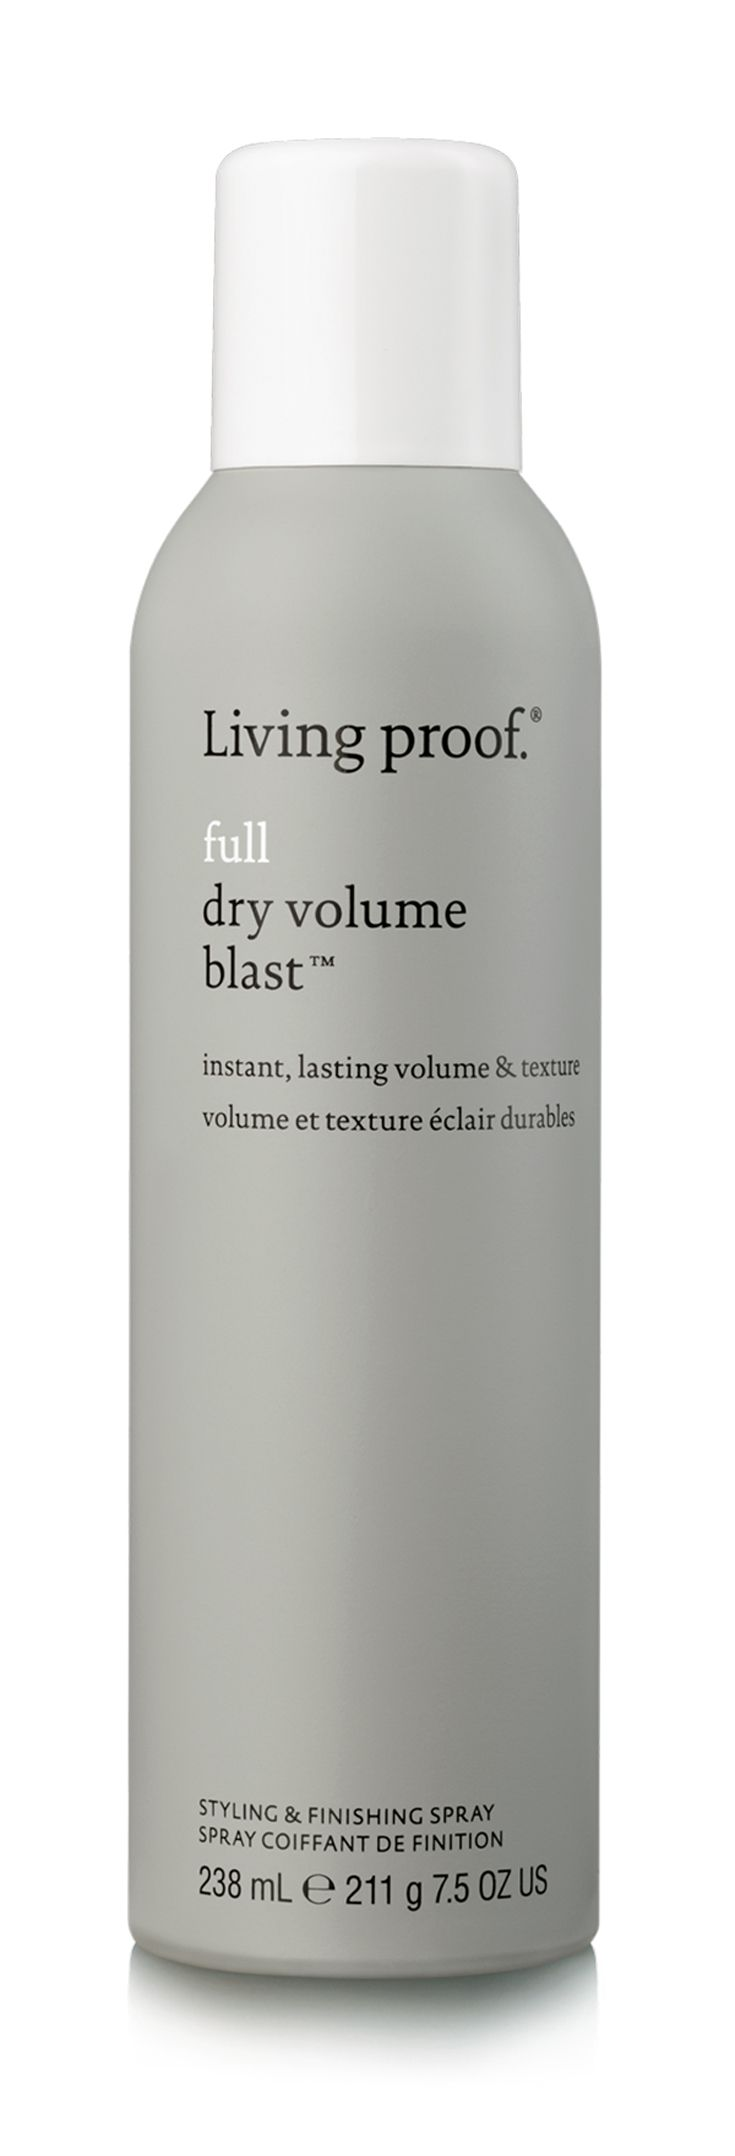 Living Proof Full Dry Volume Blast creates volume and texture that's (almost) as light as air and gives big, lasting results.